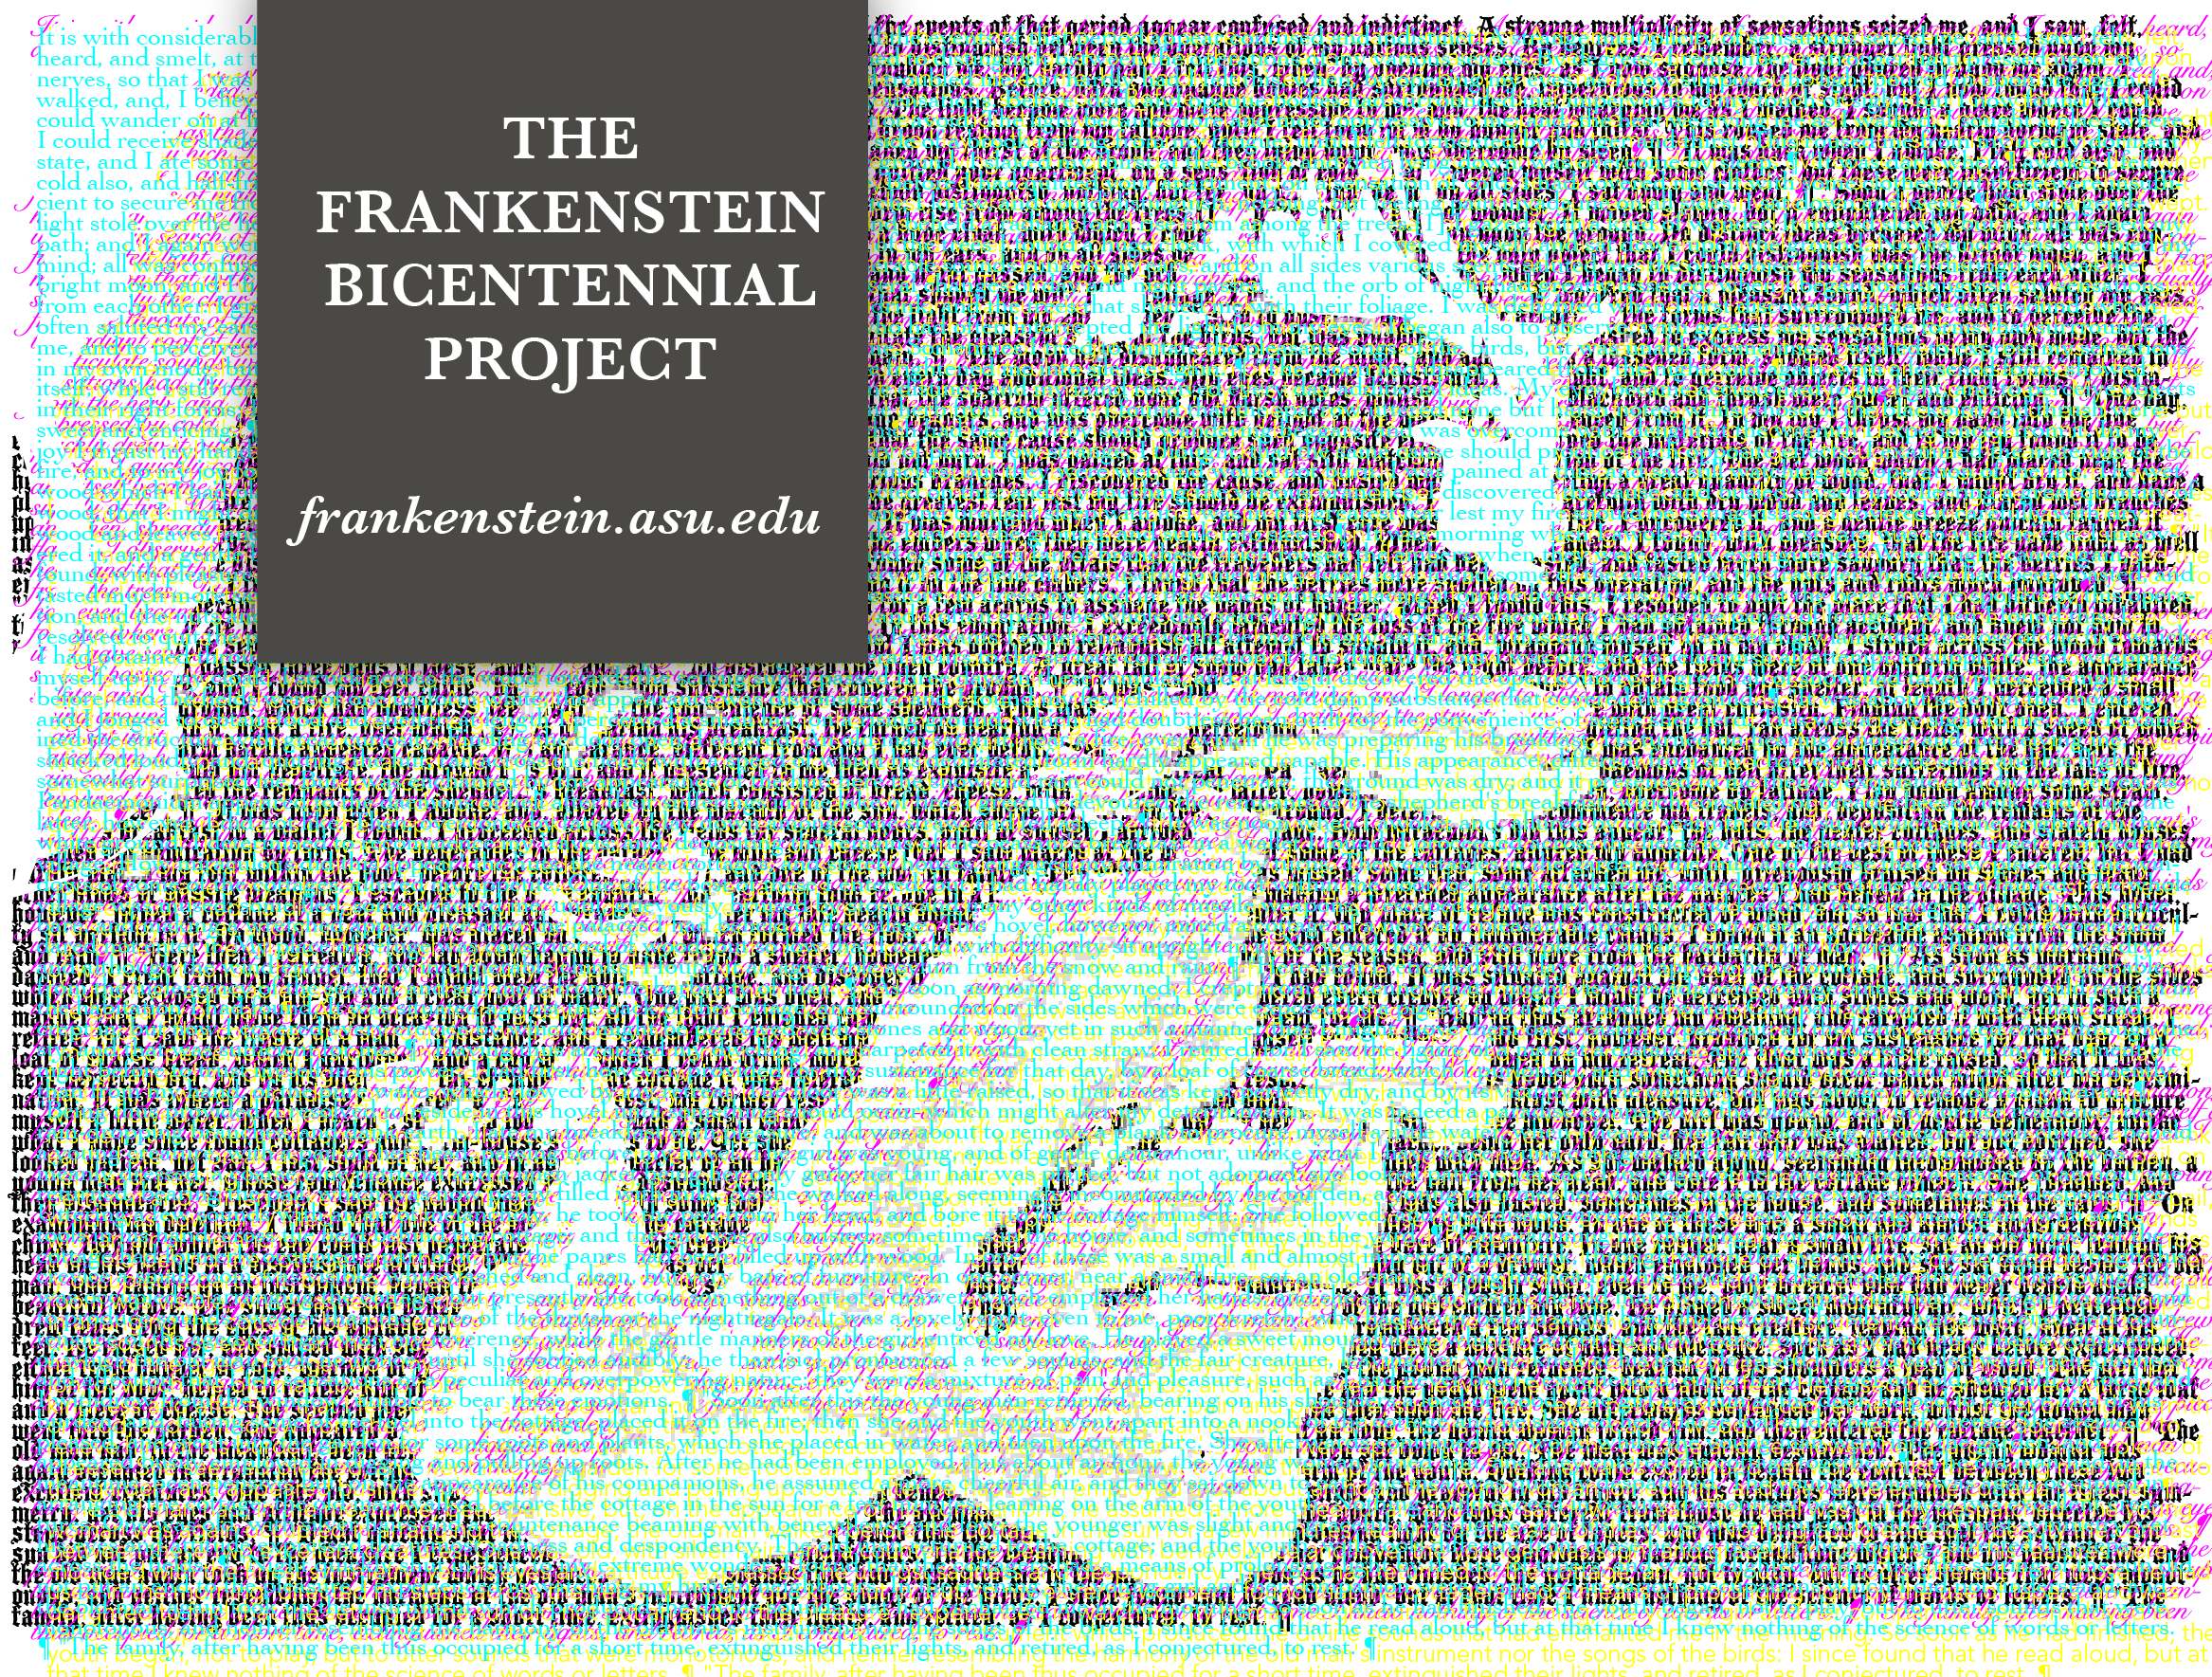 Researchers receive NSF grant to lead Frankenstein Bicentennial Workshop